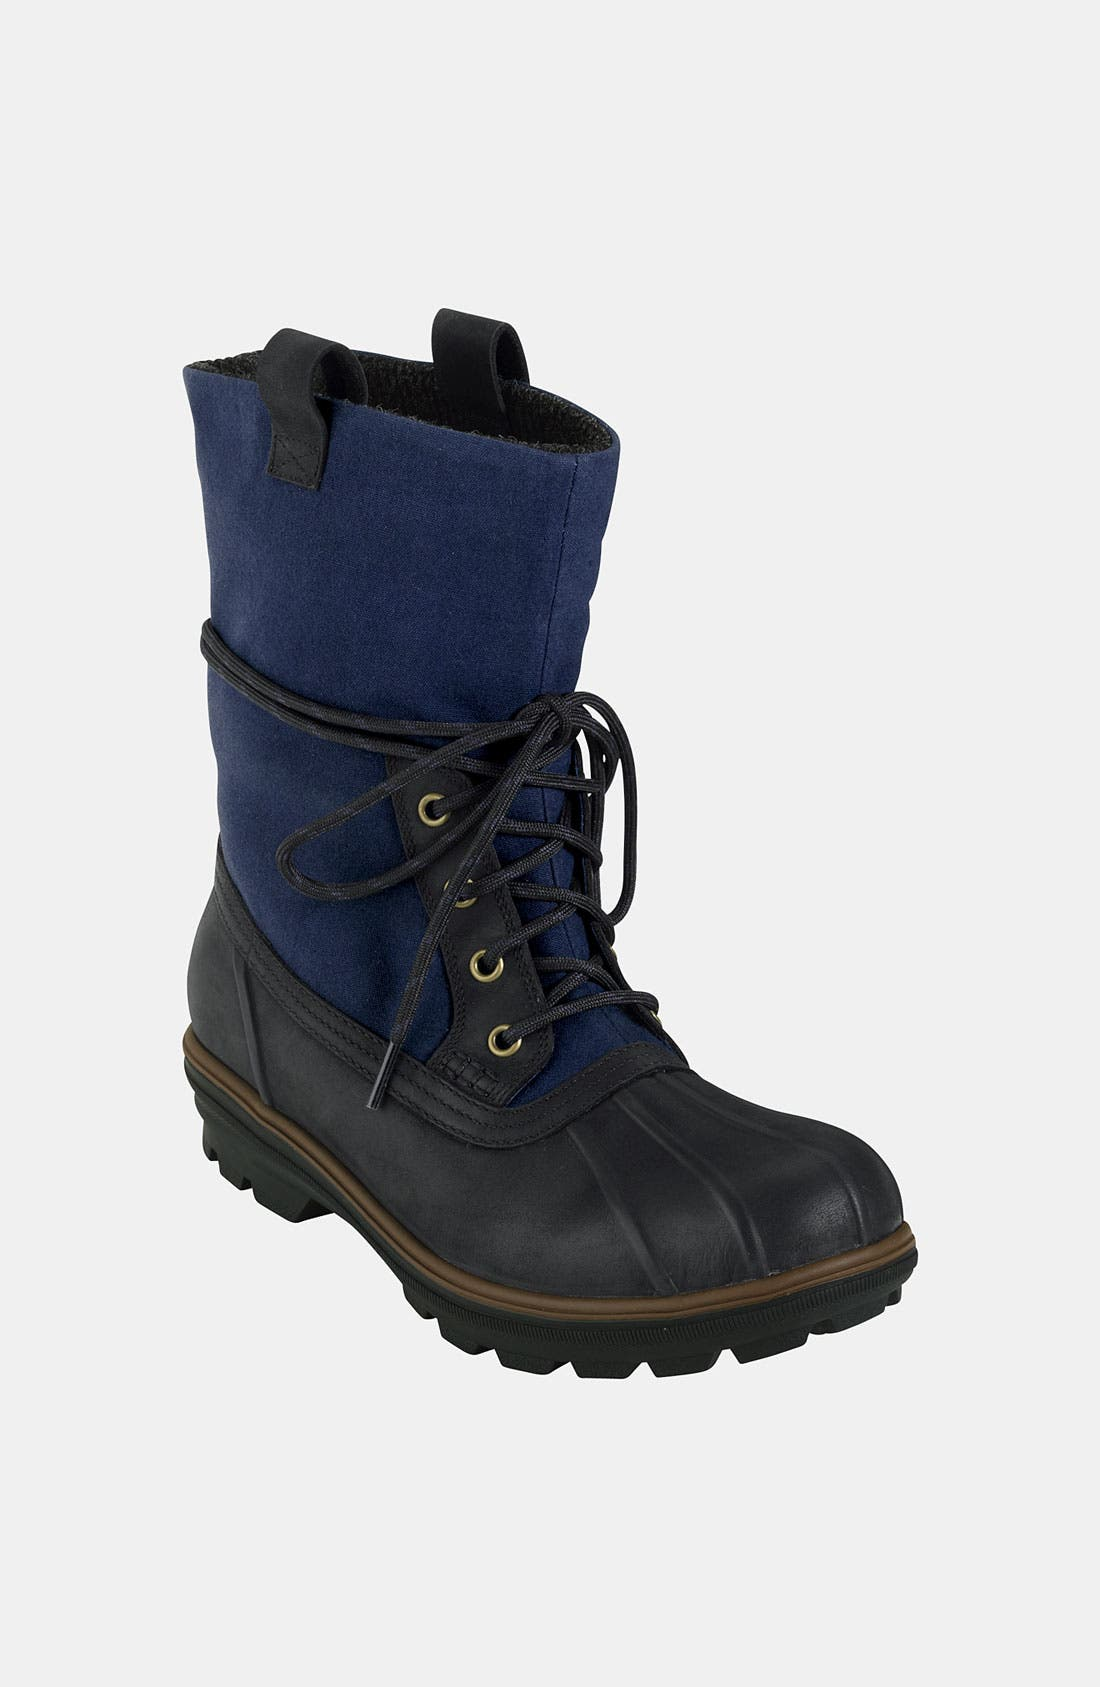 Alternate Image 1 Selected - Cole Haan 'Air Scout' Rain Boot (Online Only)